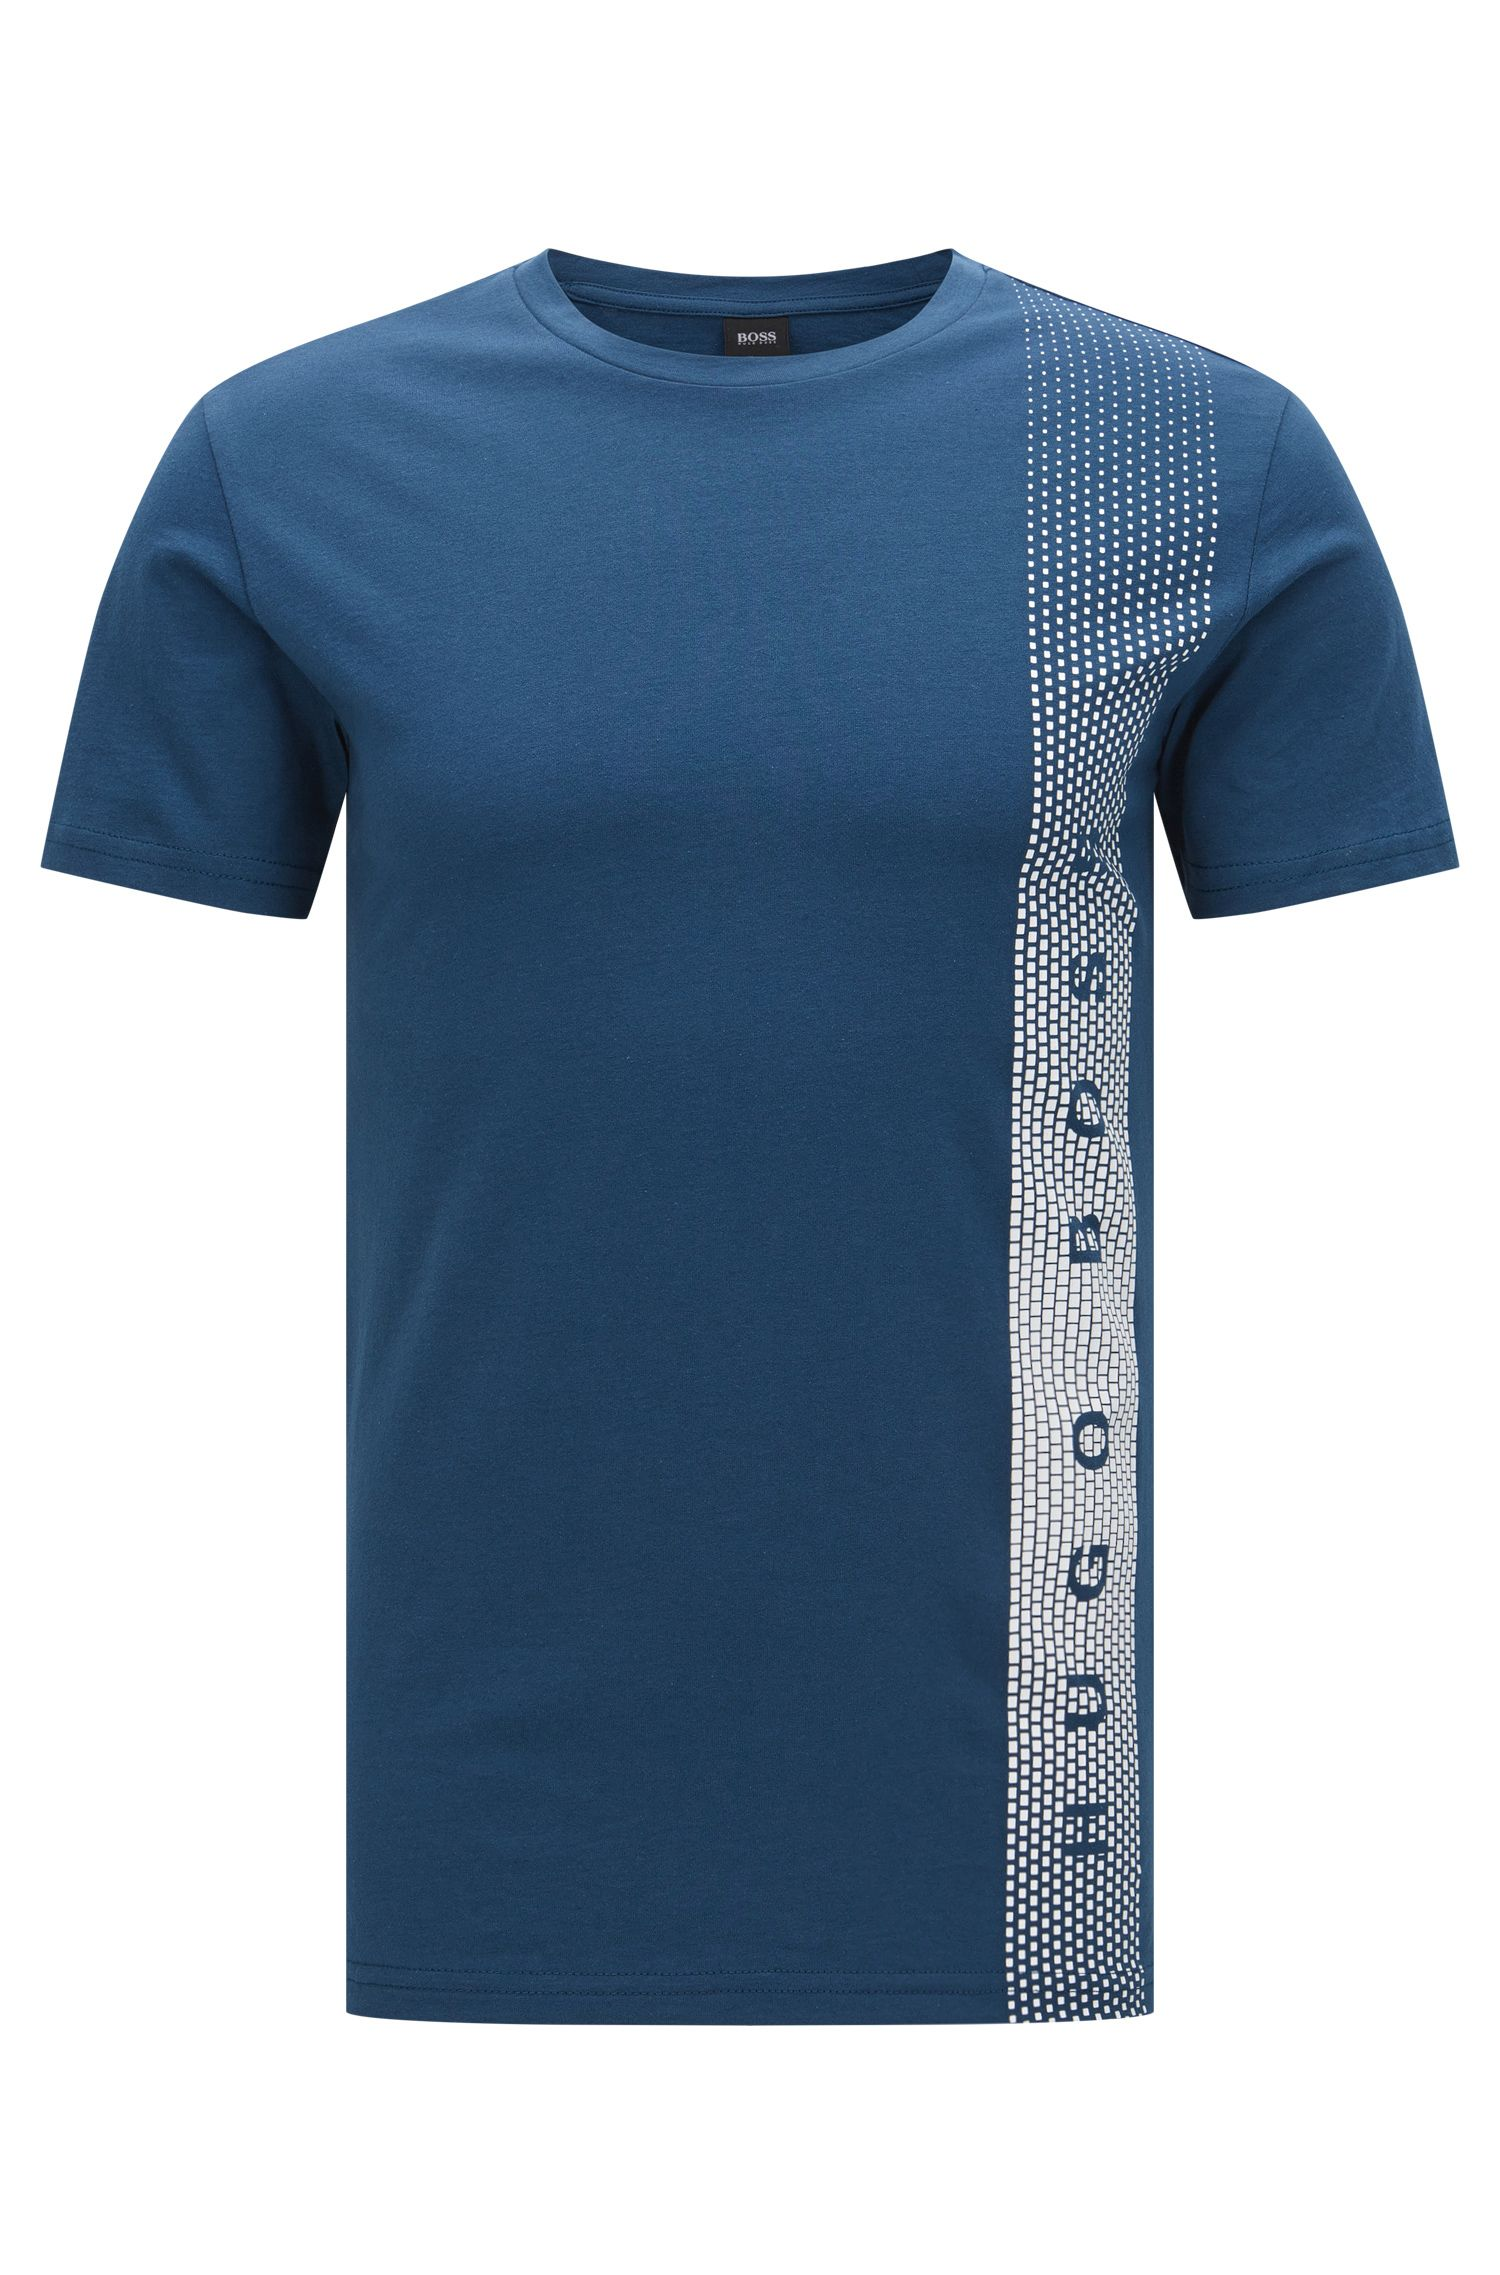 T-shirt Slim Fit en coton avec protection anti-UV : « T-Shirt RN »